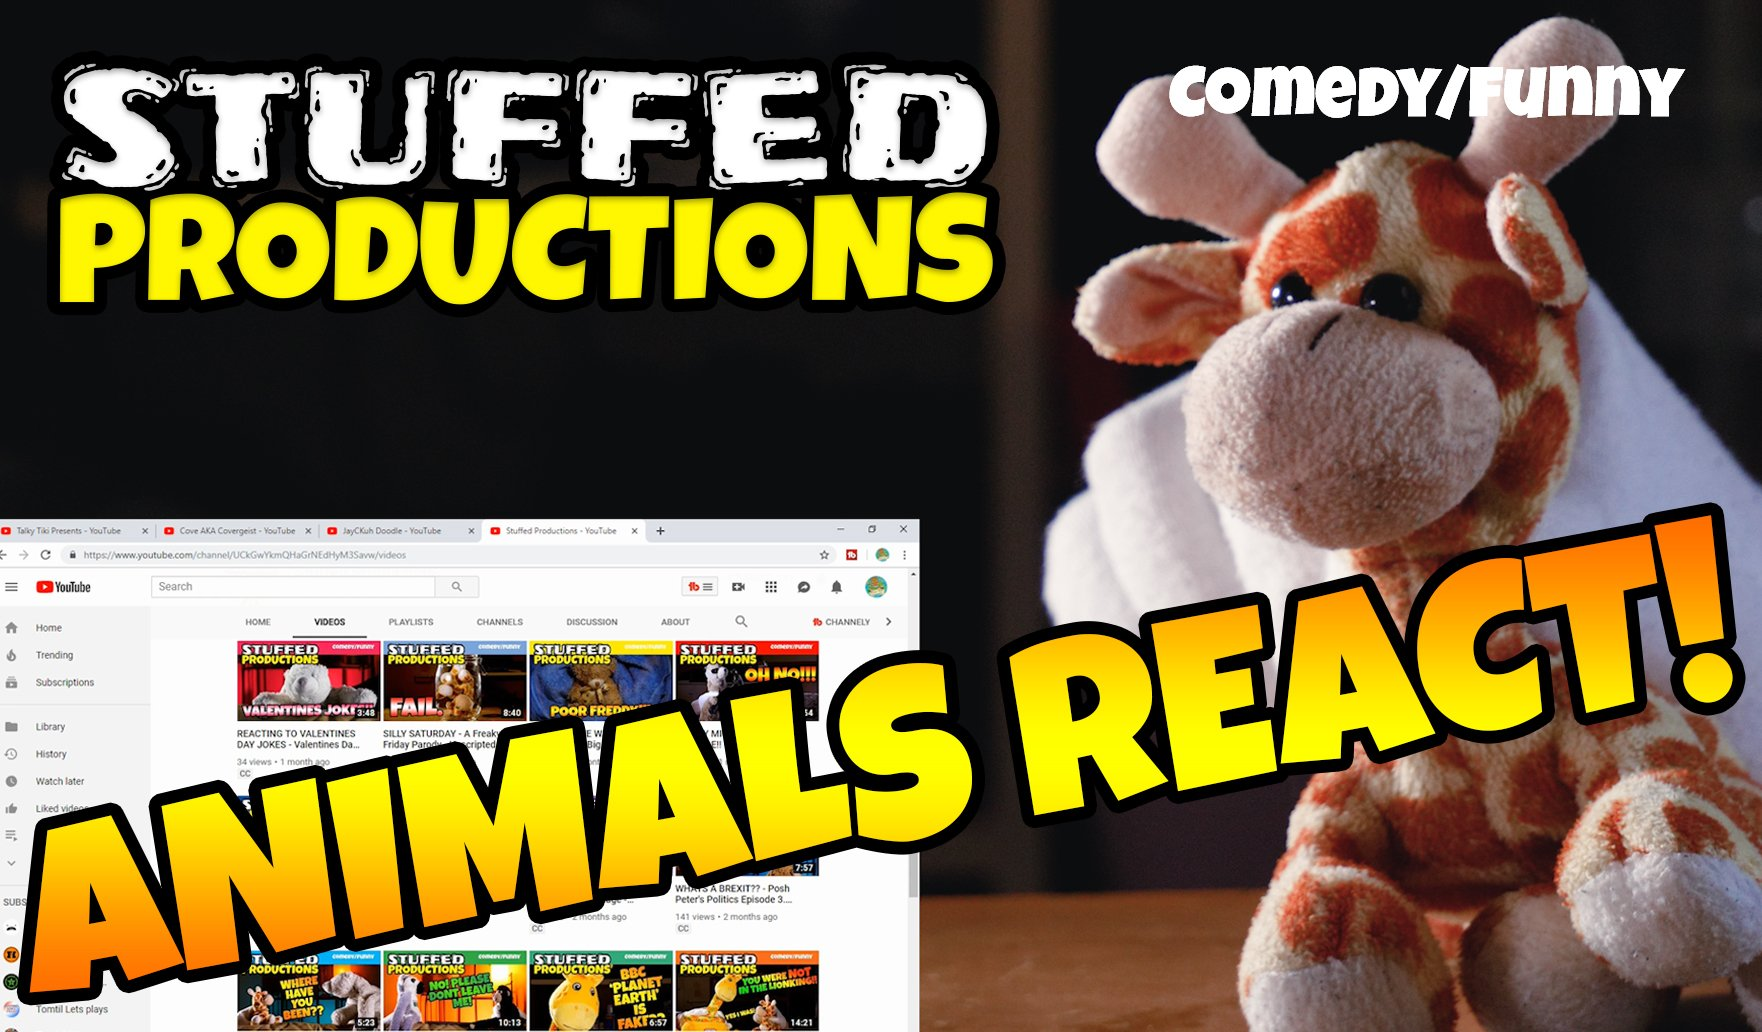 Youtube Stuffed Animals, Youtube Com C Stuffedproductions On Twitter Stuffed Animals React To Tikitalky Review Of Our Youtube Channel Https T Co Gpnjhrofzw Review Reaction React Reacting Animalsreact Channelreview Smallyoutuber Supportindiefilm Indie Youtube